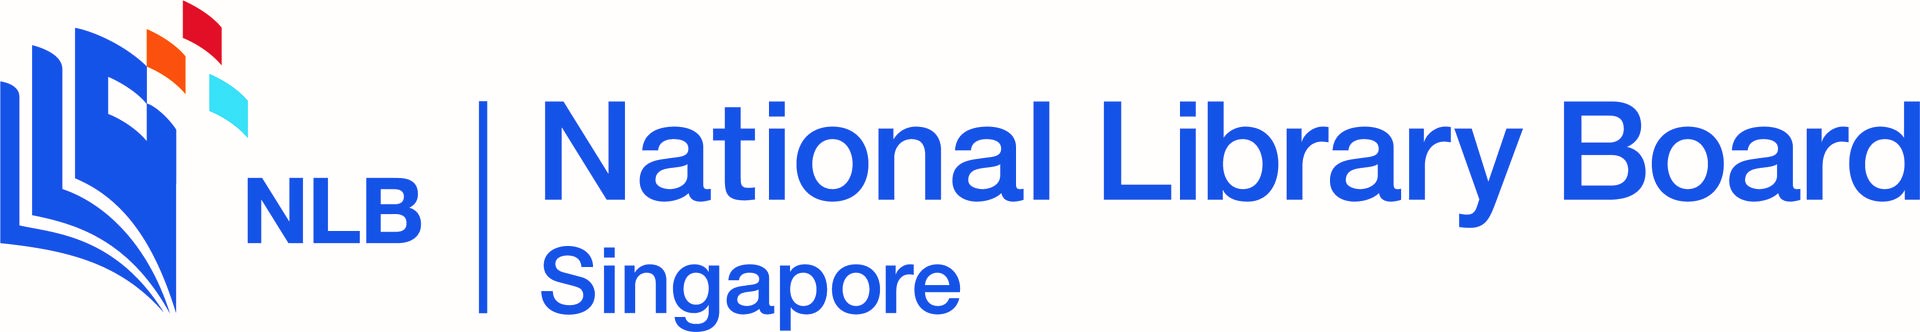 National Board Library